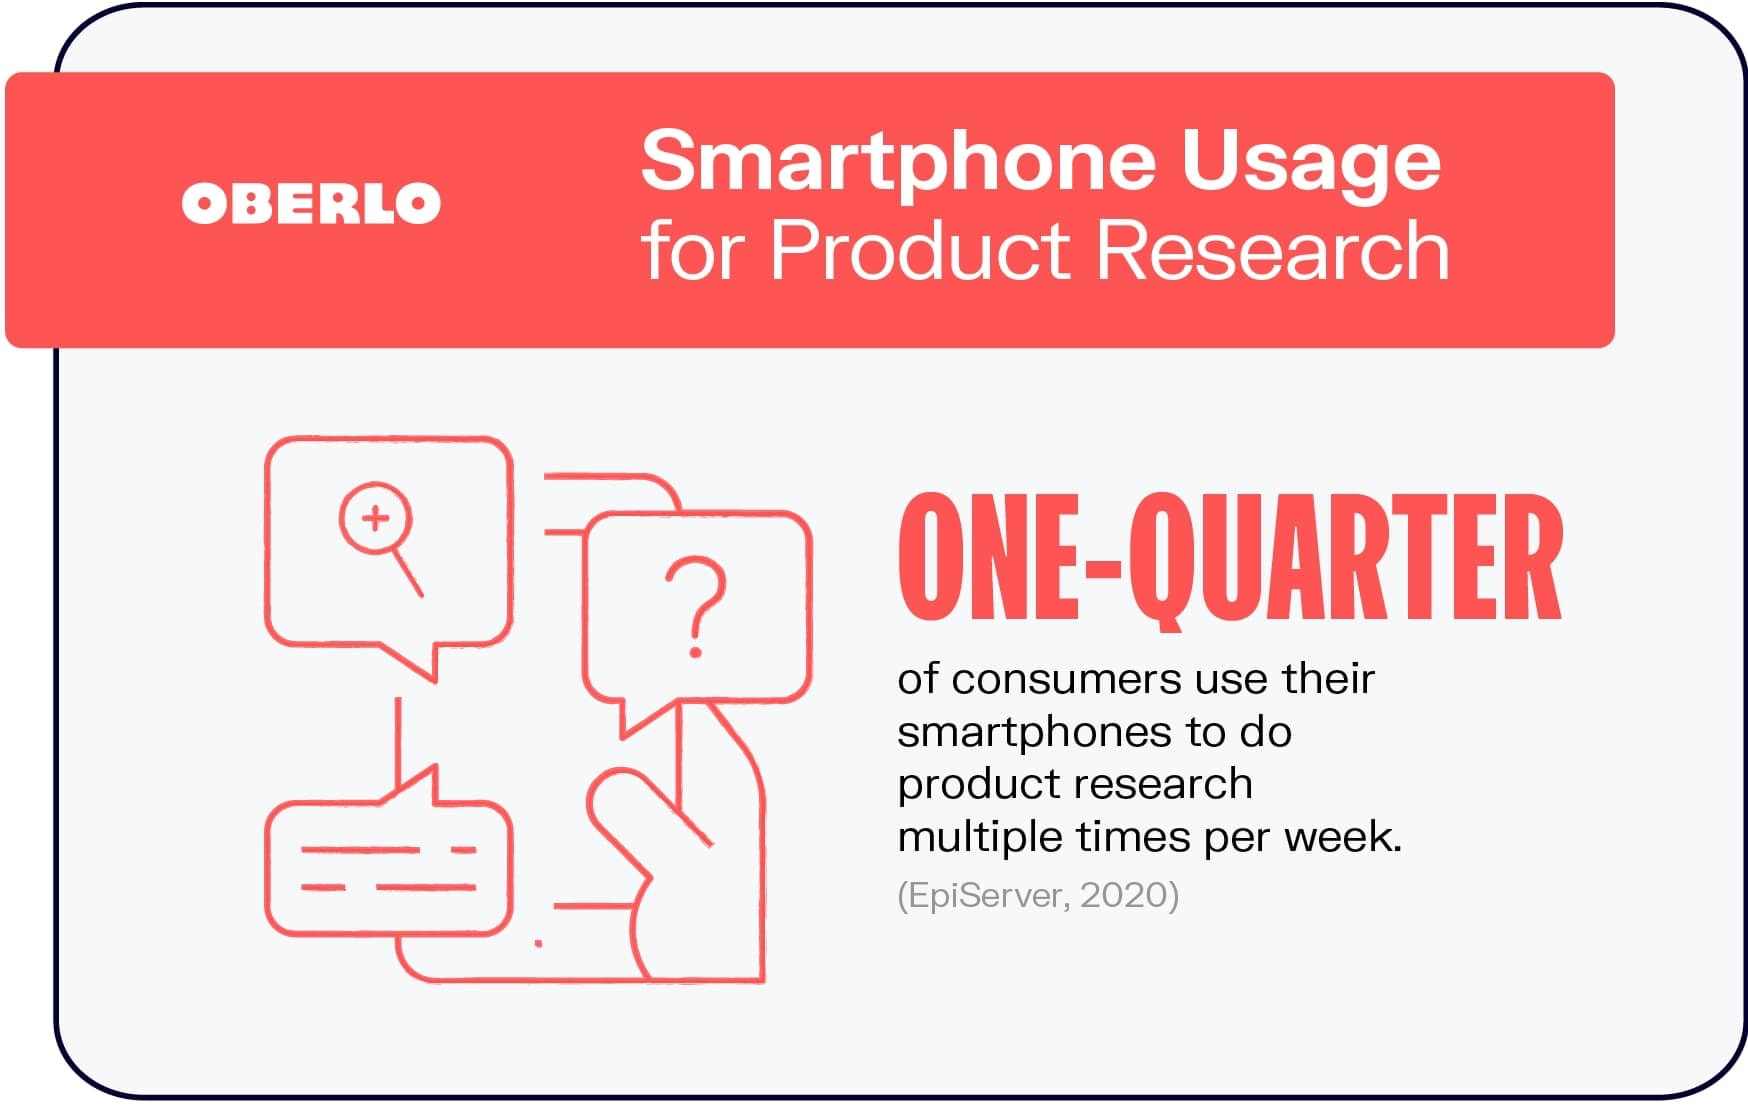 Smartphone Usage for Product Research